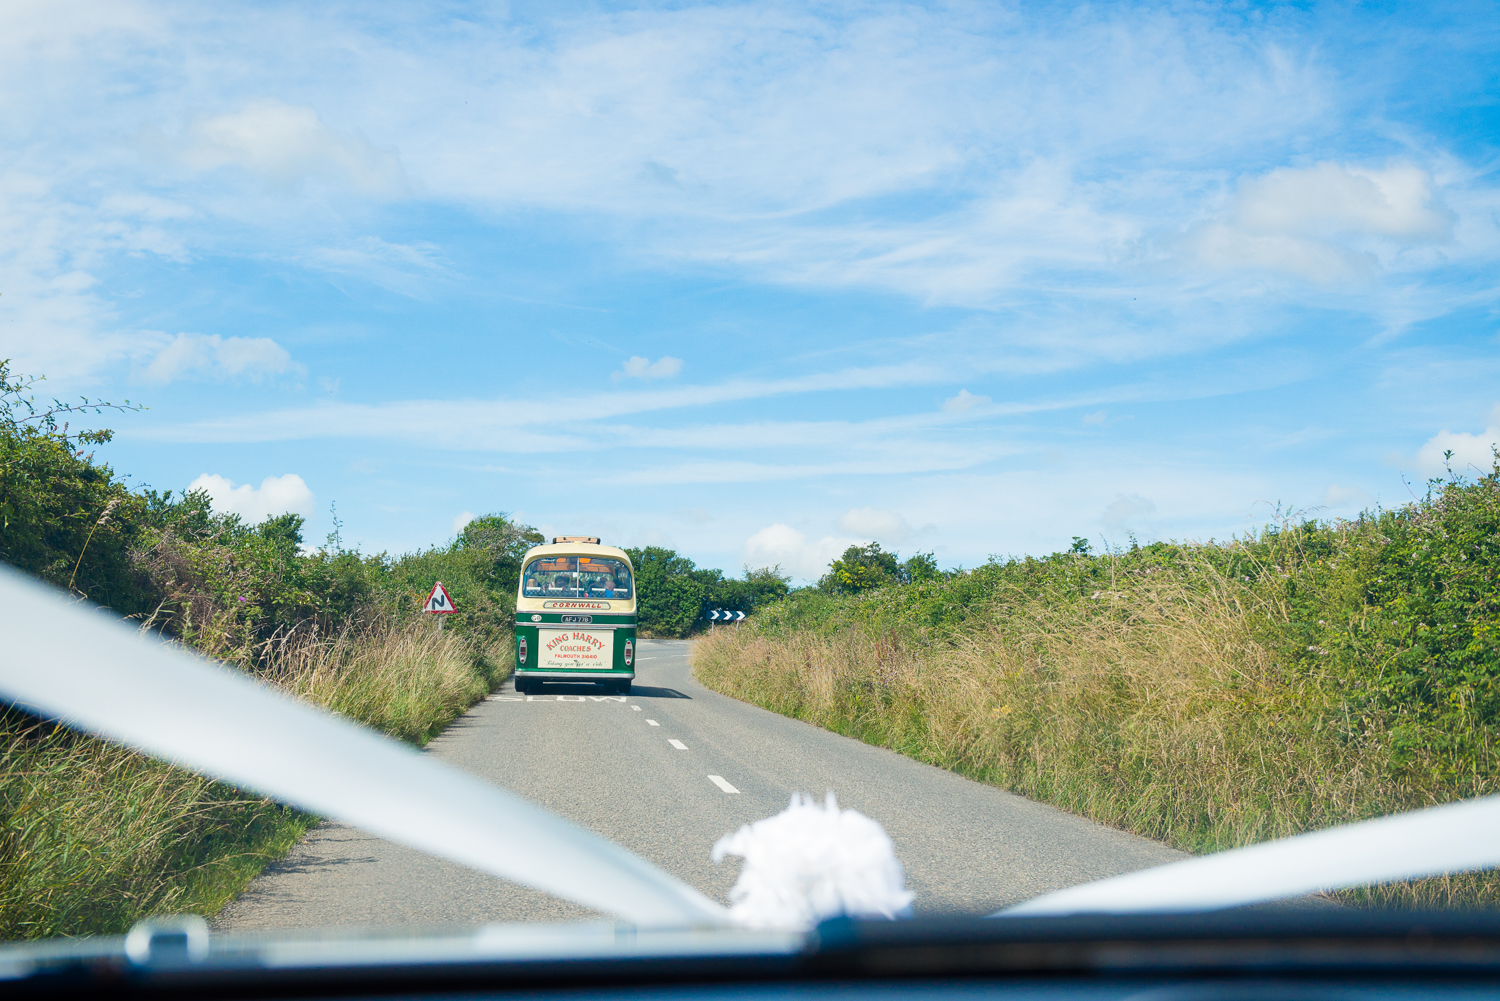 A-Cornish-Farm-Wedding-Falmouth-©-Rhapsody-Road-Photography-Emma-Lambe-30.jpg